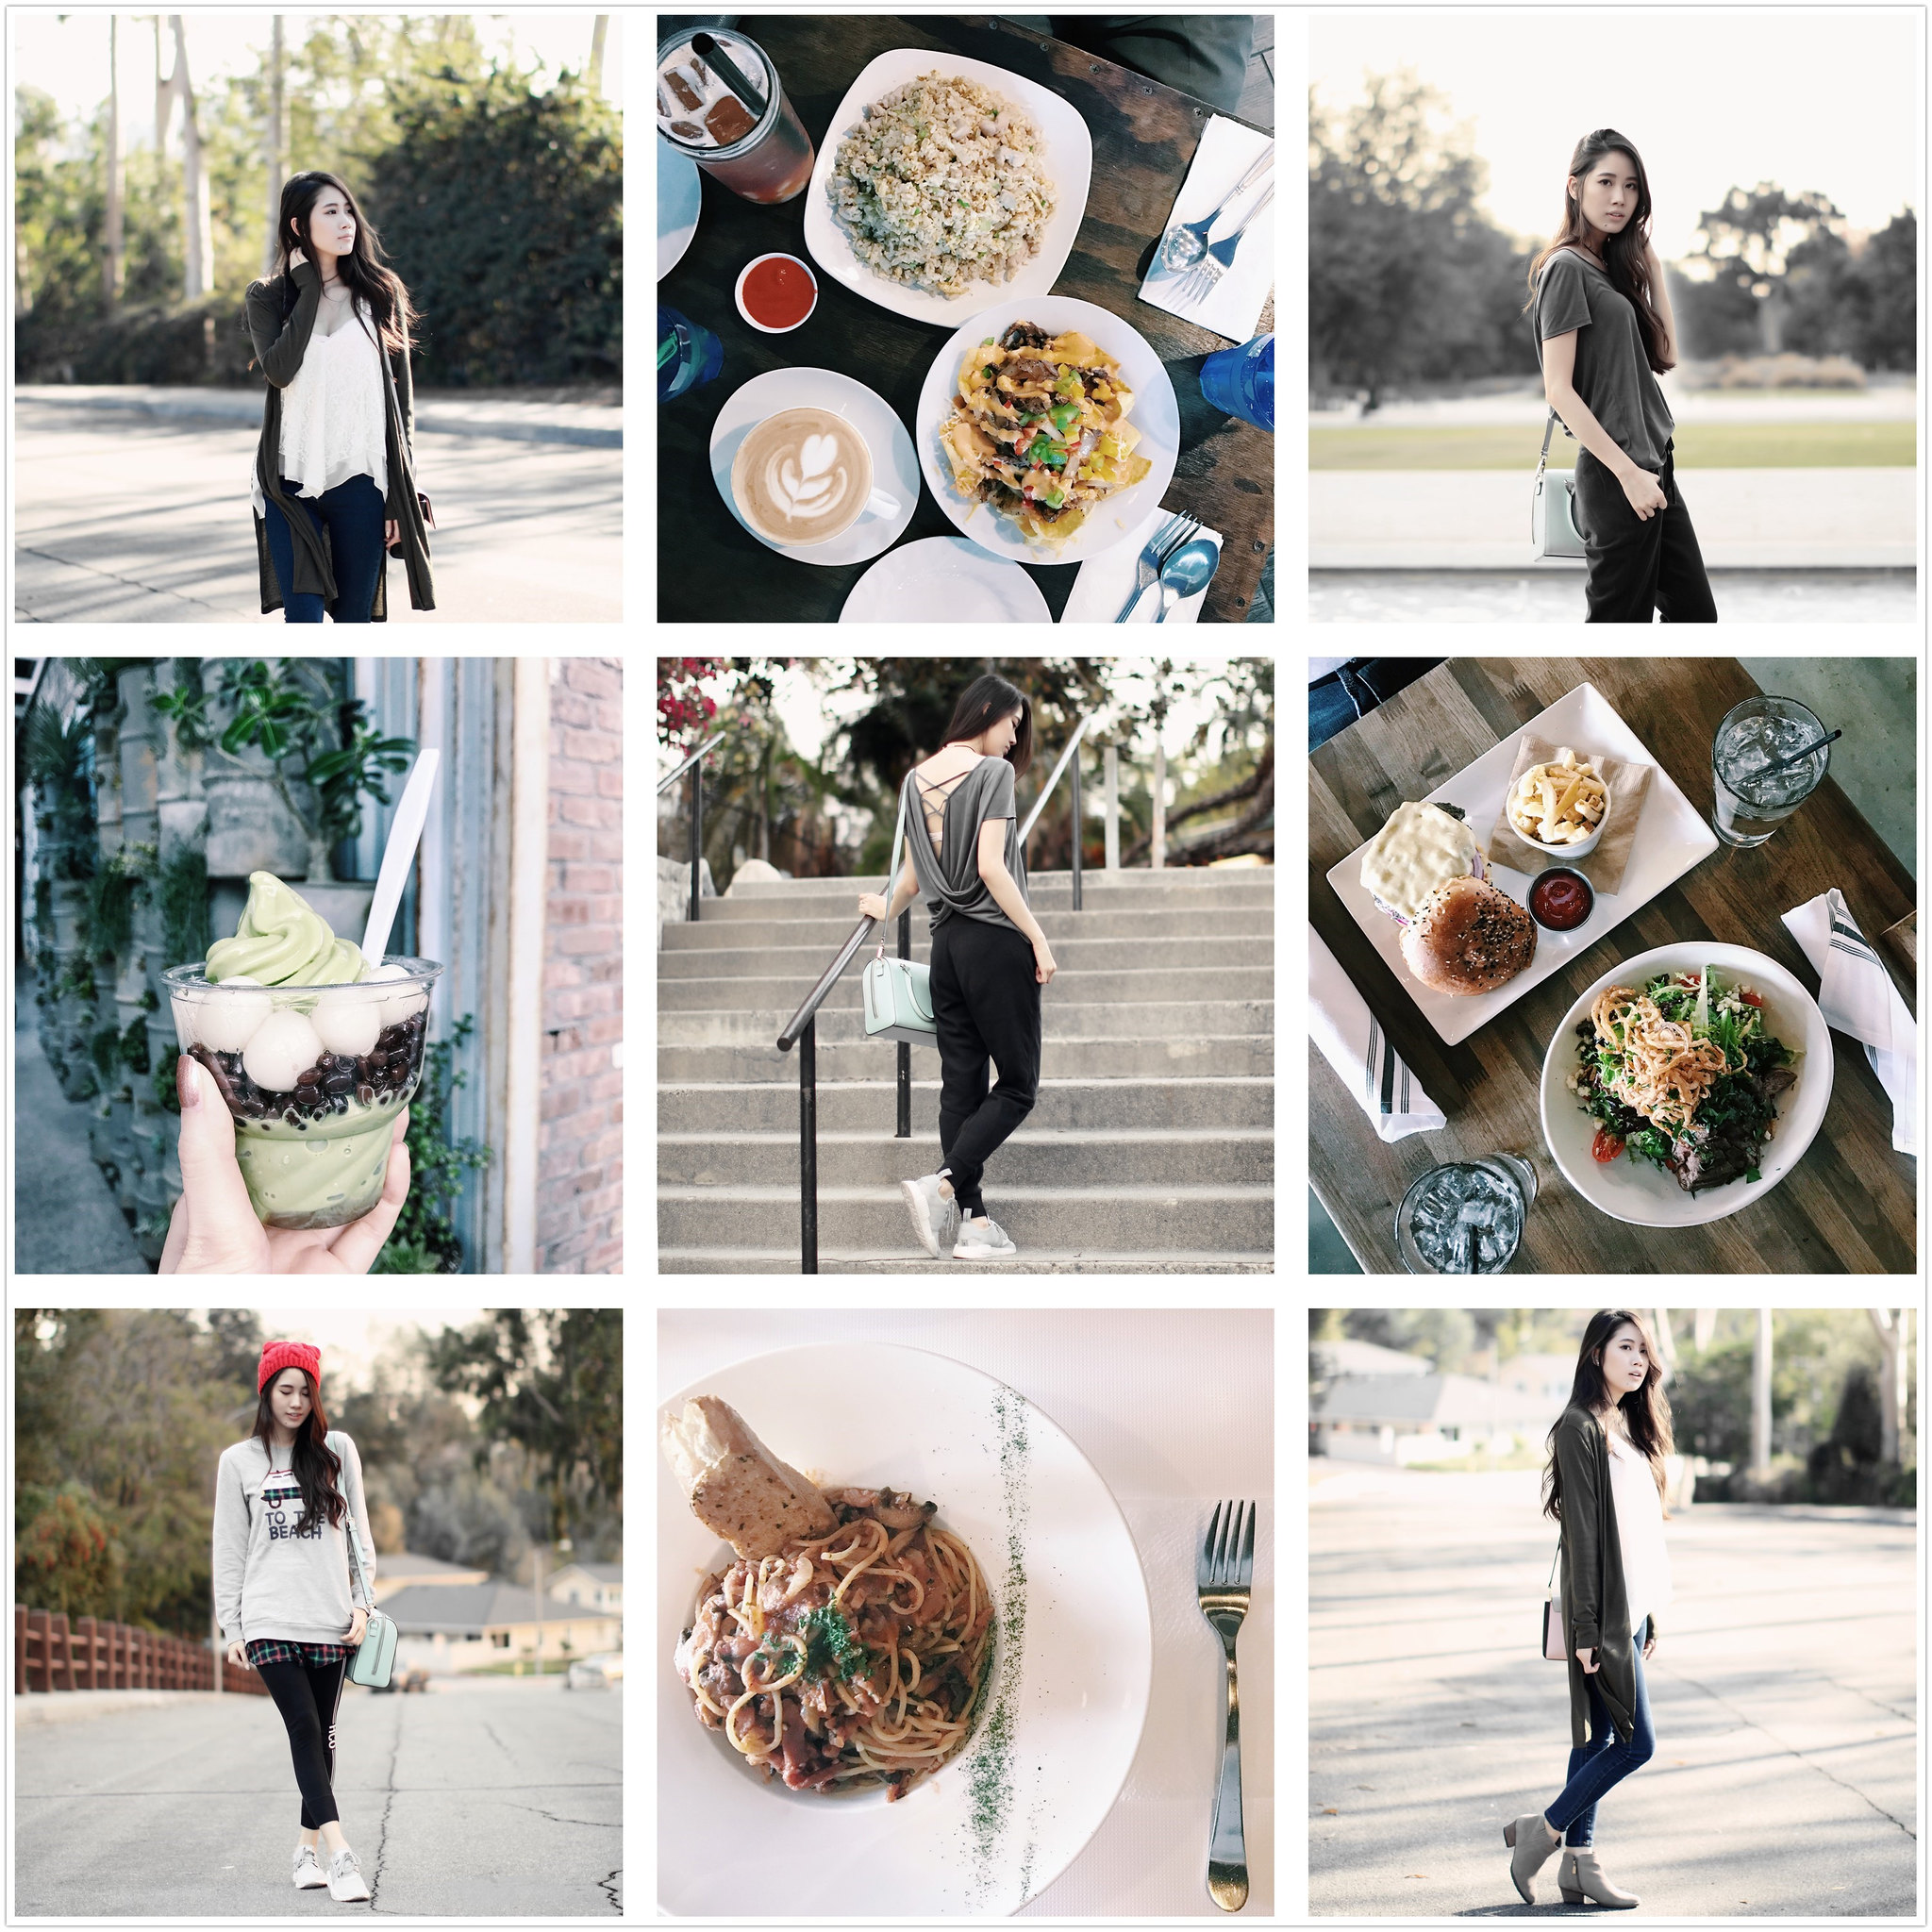 november2016-instagram-roundup-clothestoyouuu-elizabeeetht-fashionblogger-lifestyle-fashion-foodie